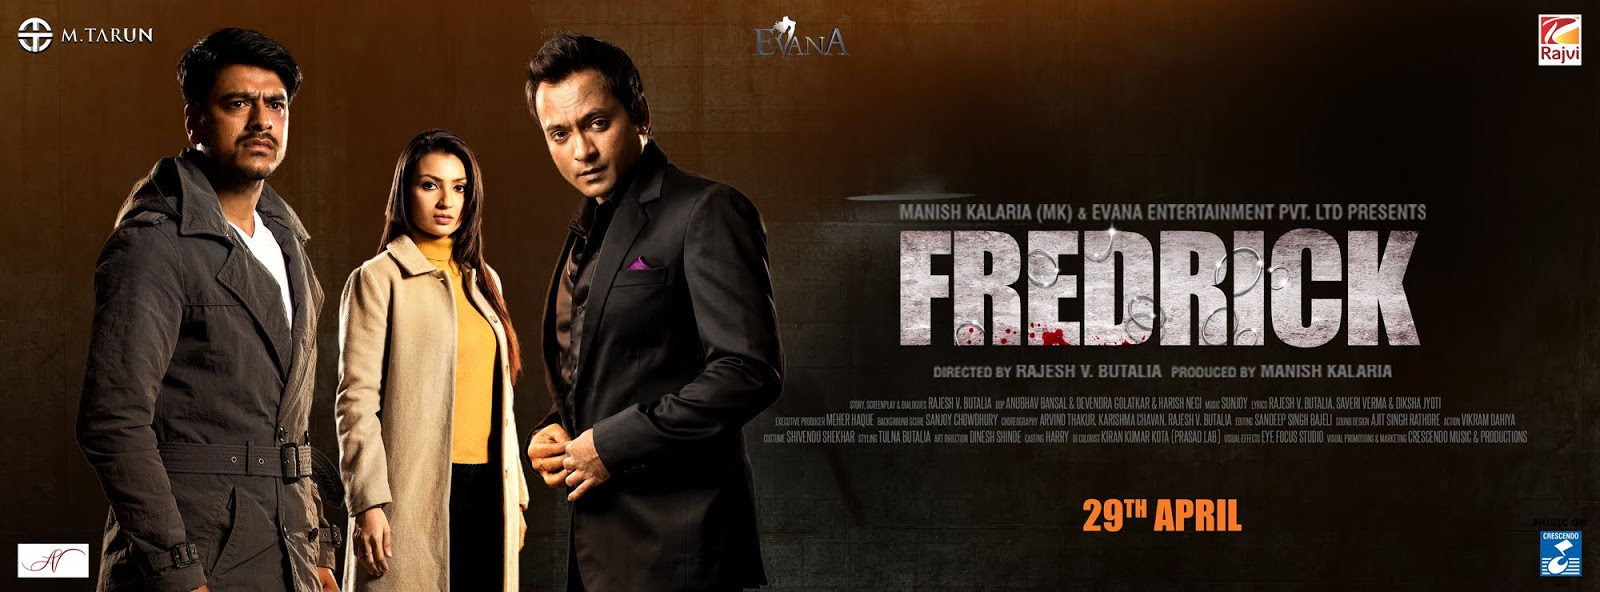 Complete cast and crew of Fredrick  (2016) bollywood hindi movie wiki, poster, Trailer, music list - Prashant Narayanan and Tulna, Movie release date 29 May, 2016